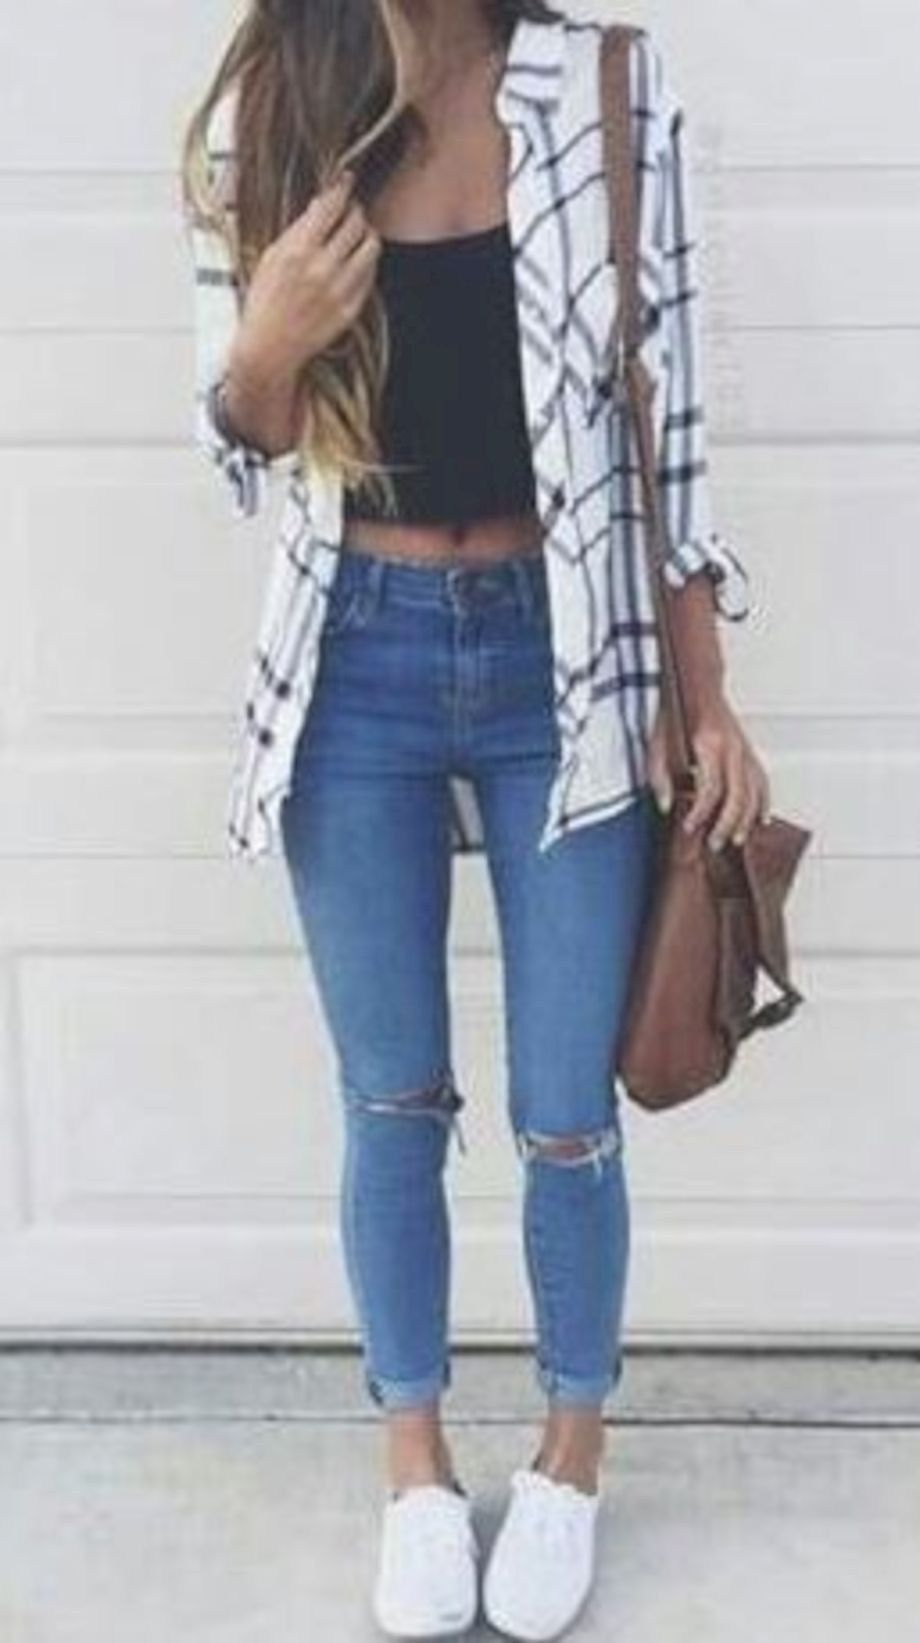 Grunge flannel outfits  Trending spring outfits ideas to fill out your style